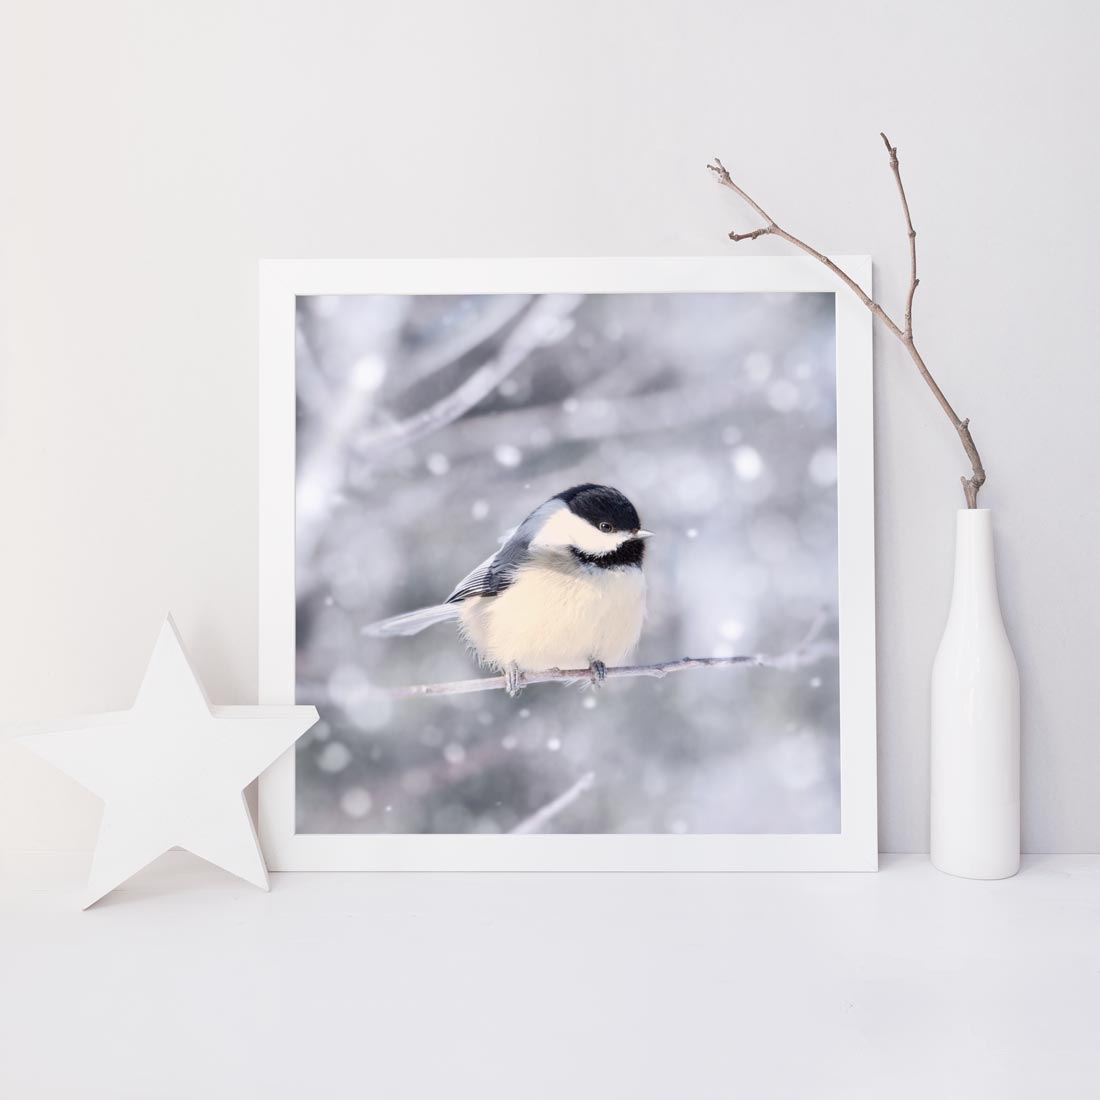 Chickadee in Snow No. 11